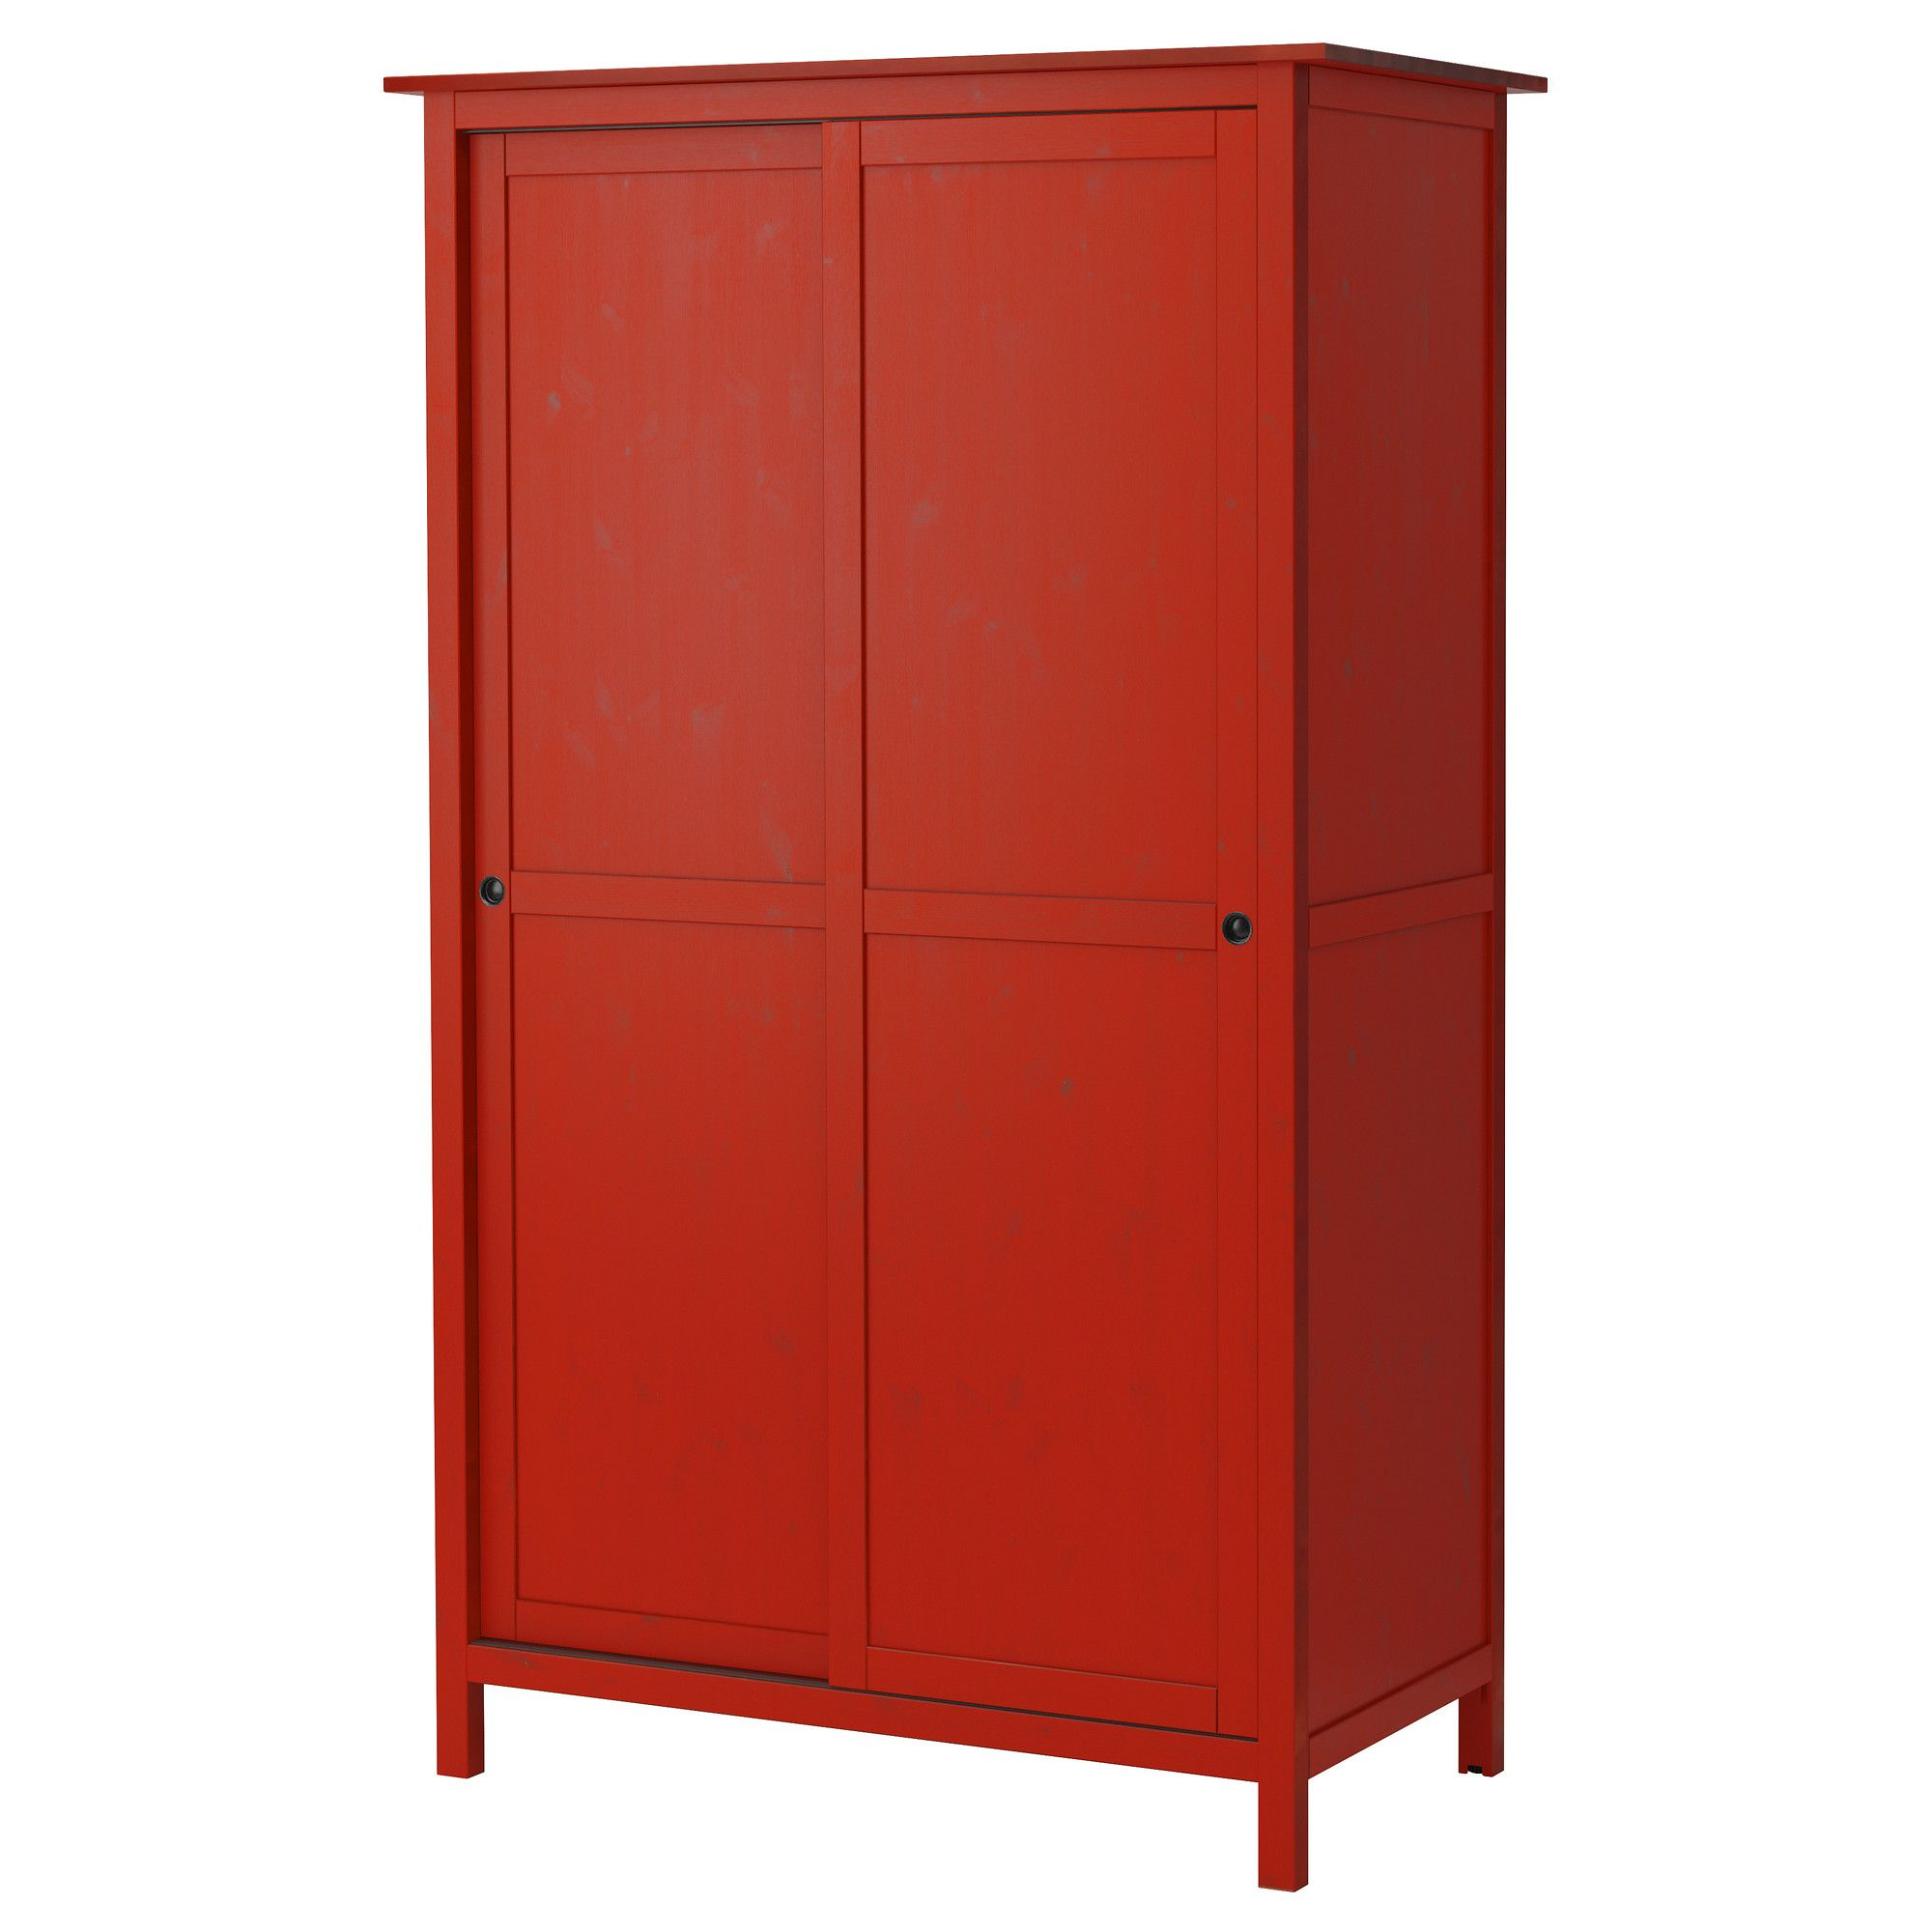 hemnes kleiderschrank mit 2 schiebet ren rot ikea oder weiss 120x197 249 eur. Black Bedroom Furniture Sets. Home Design Ideas